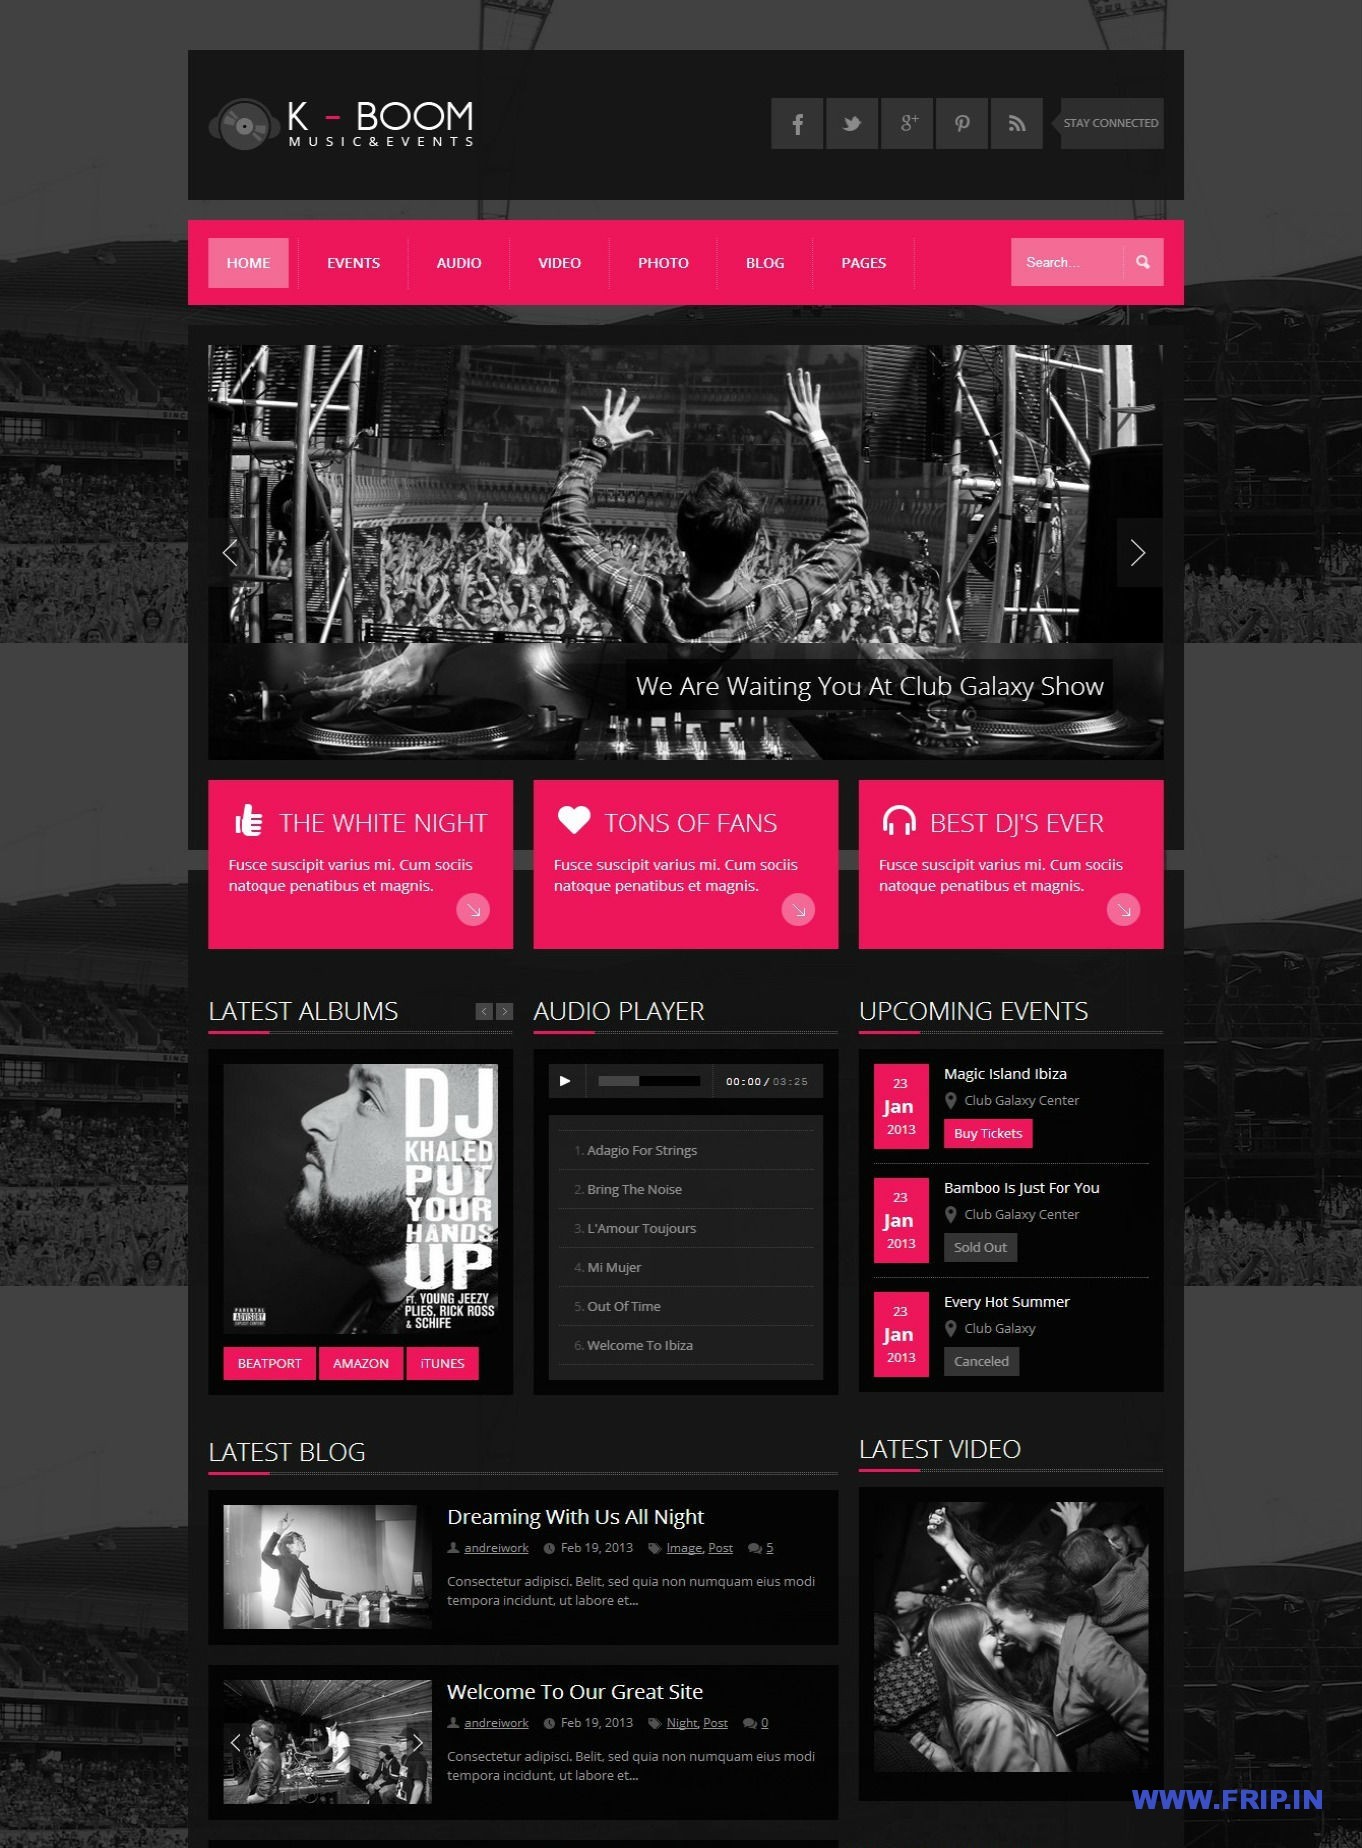 K-BOOM - Events & Music Responsive WordPress Theme - Business|Metro-style